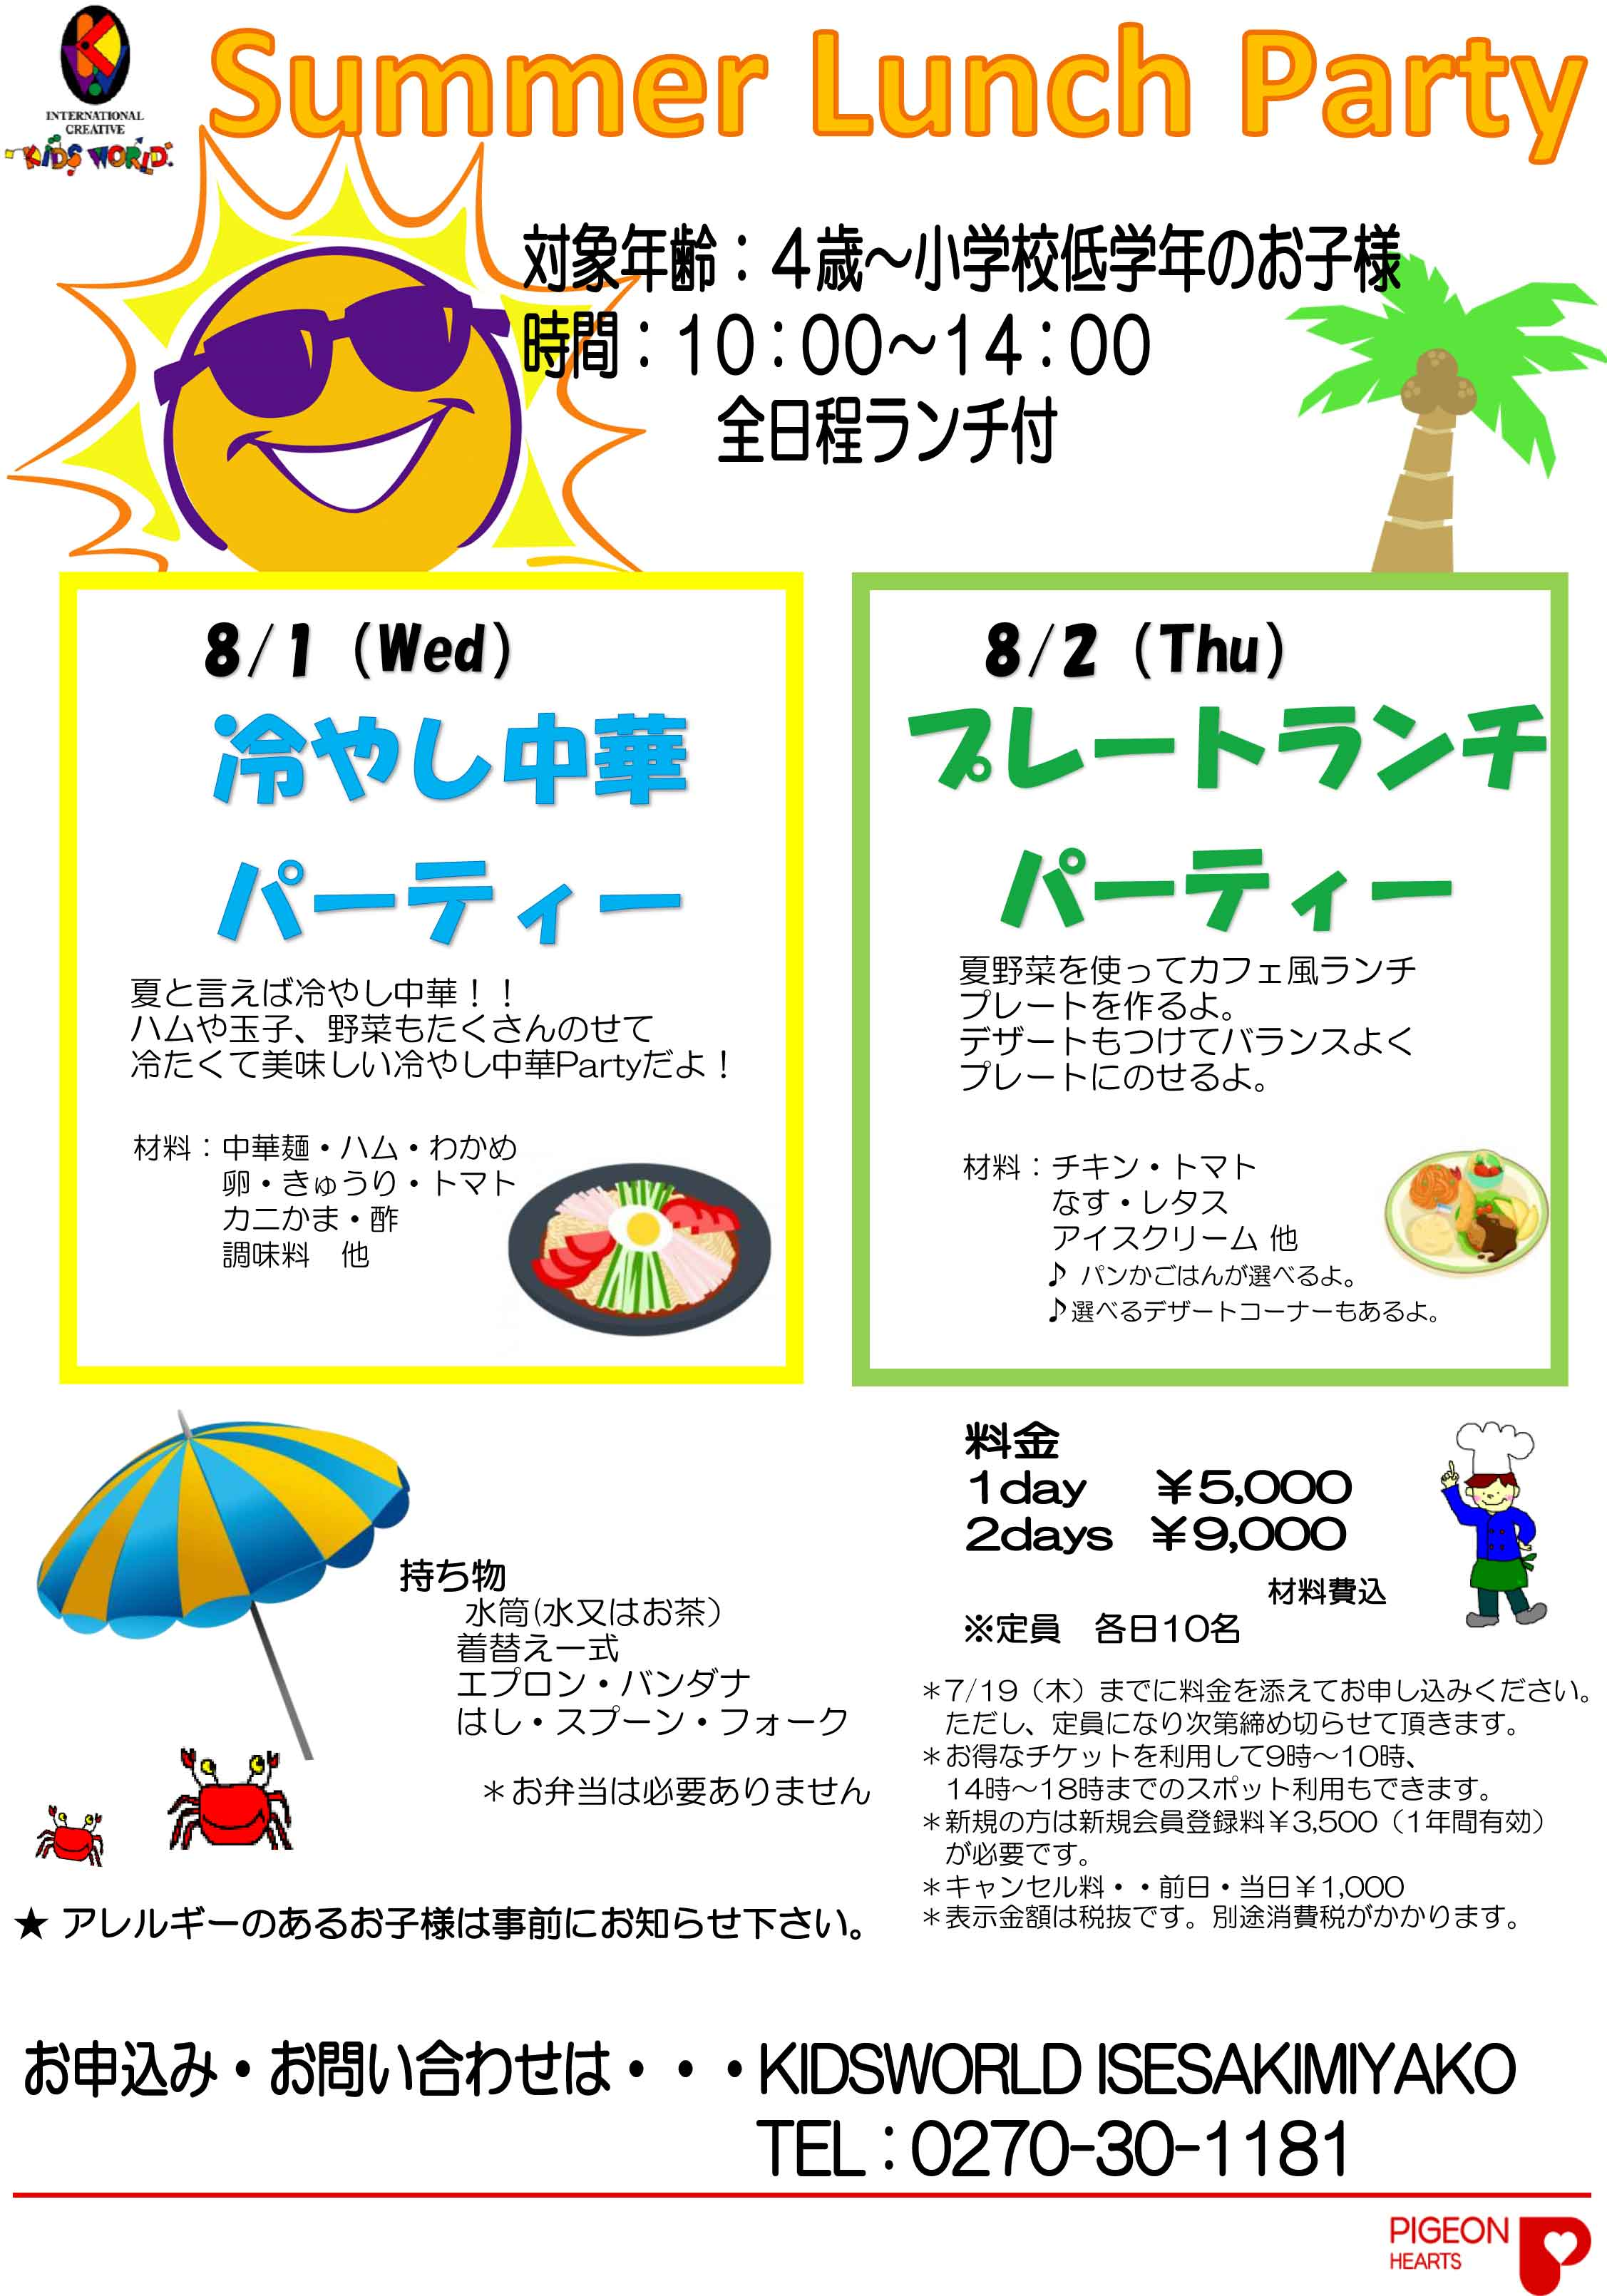 【伊勢崎宮子】summer-Lunch-Party-2018 -1